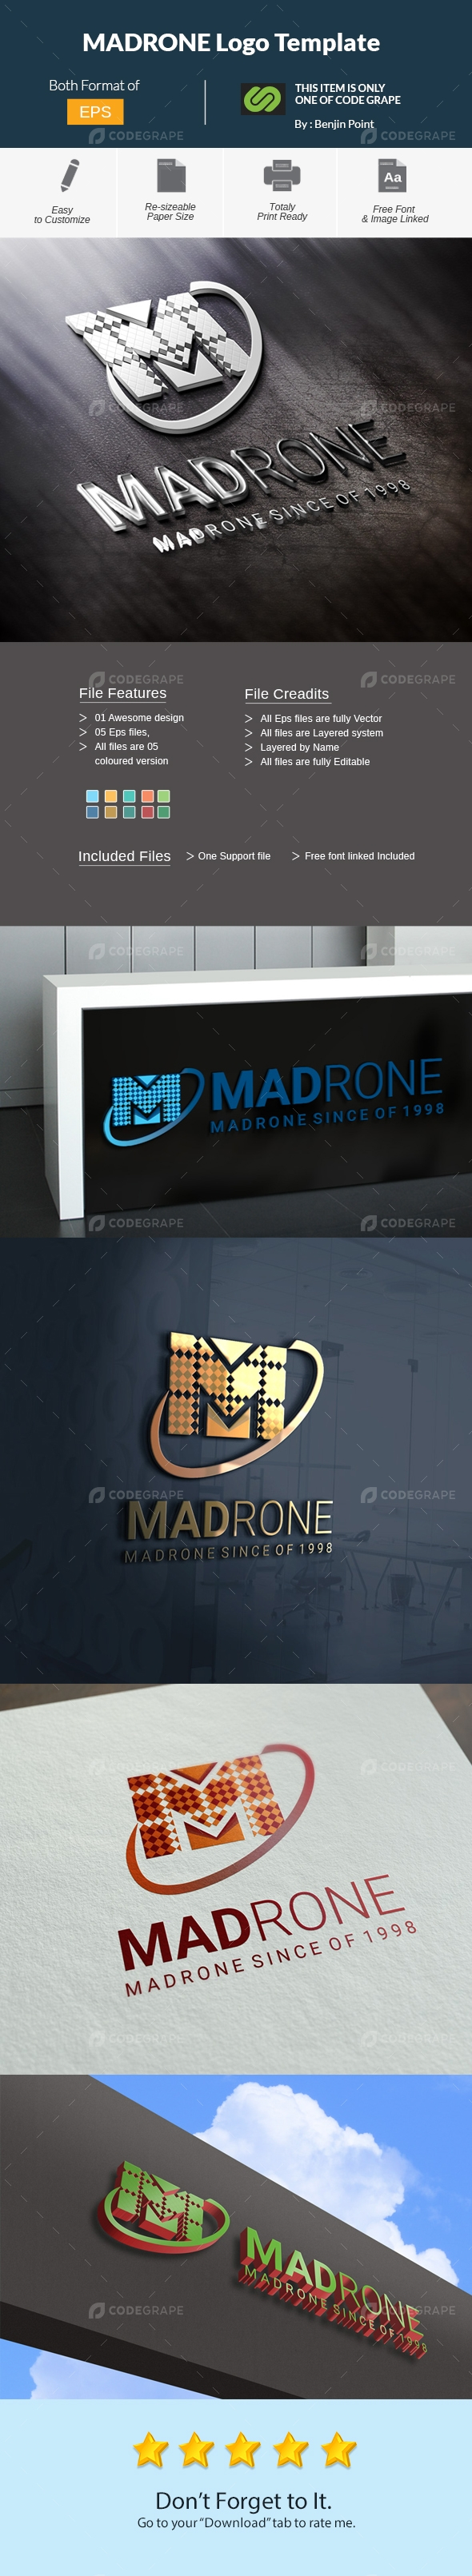 MADRONE Logo Template